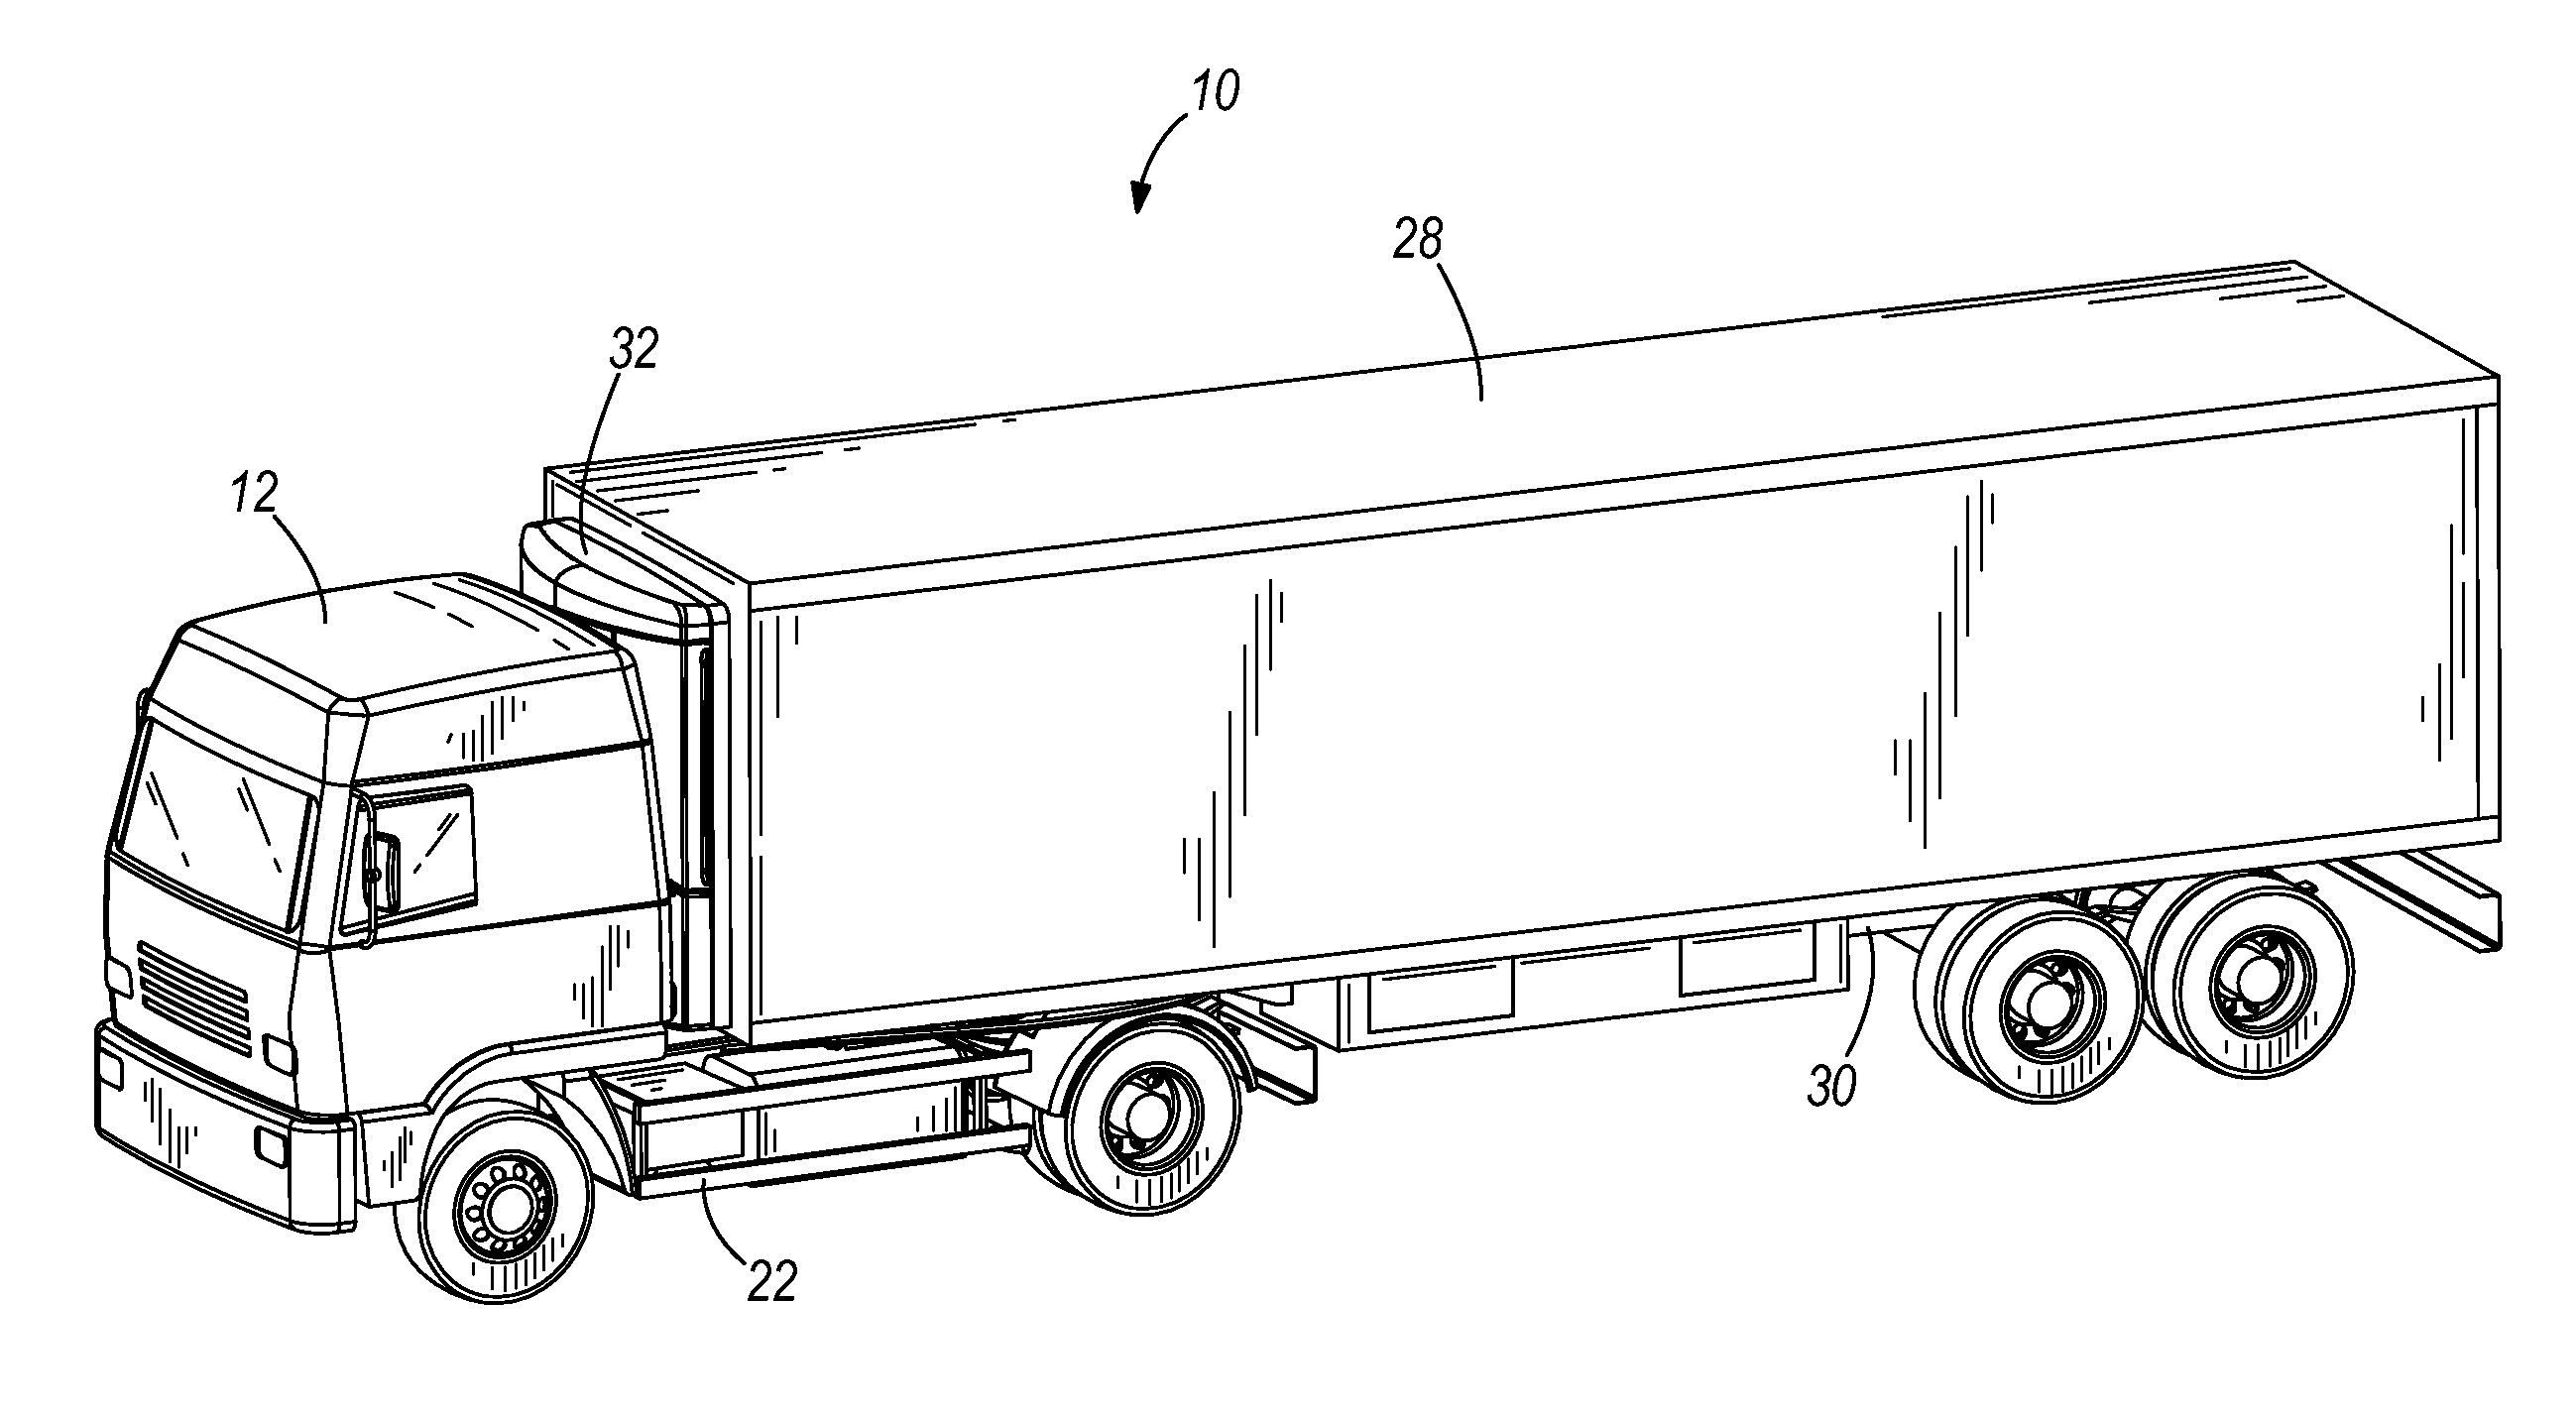 Tractor Trailer Truck Drawings Sketch Coloring Page